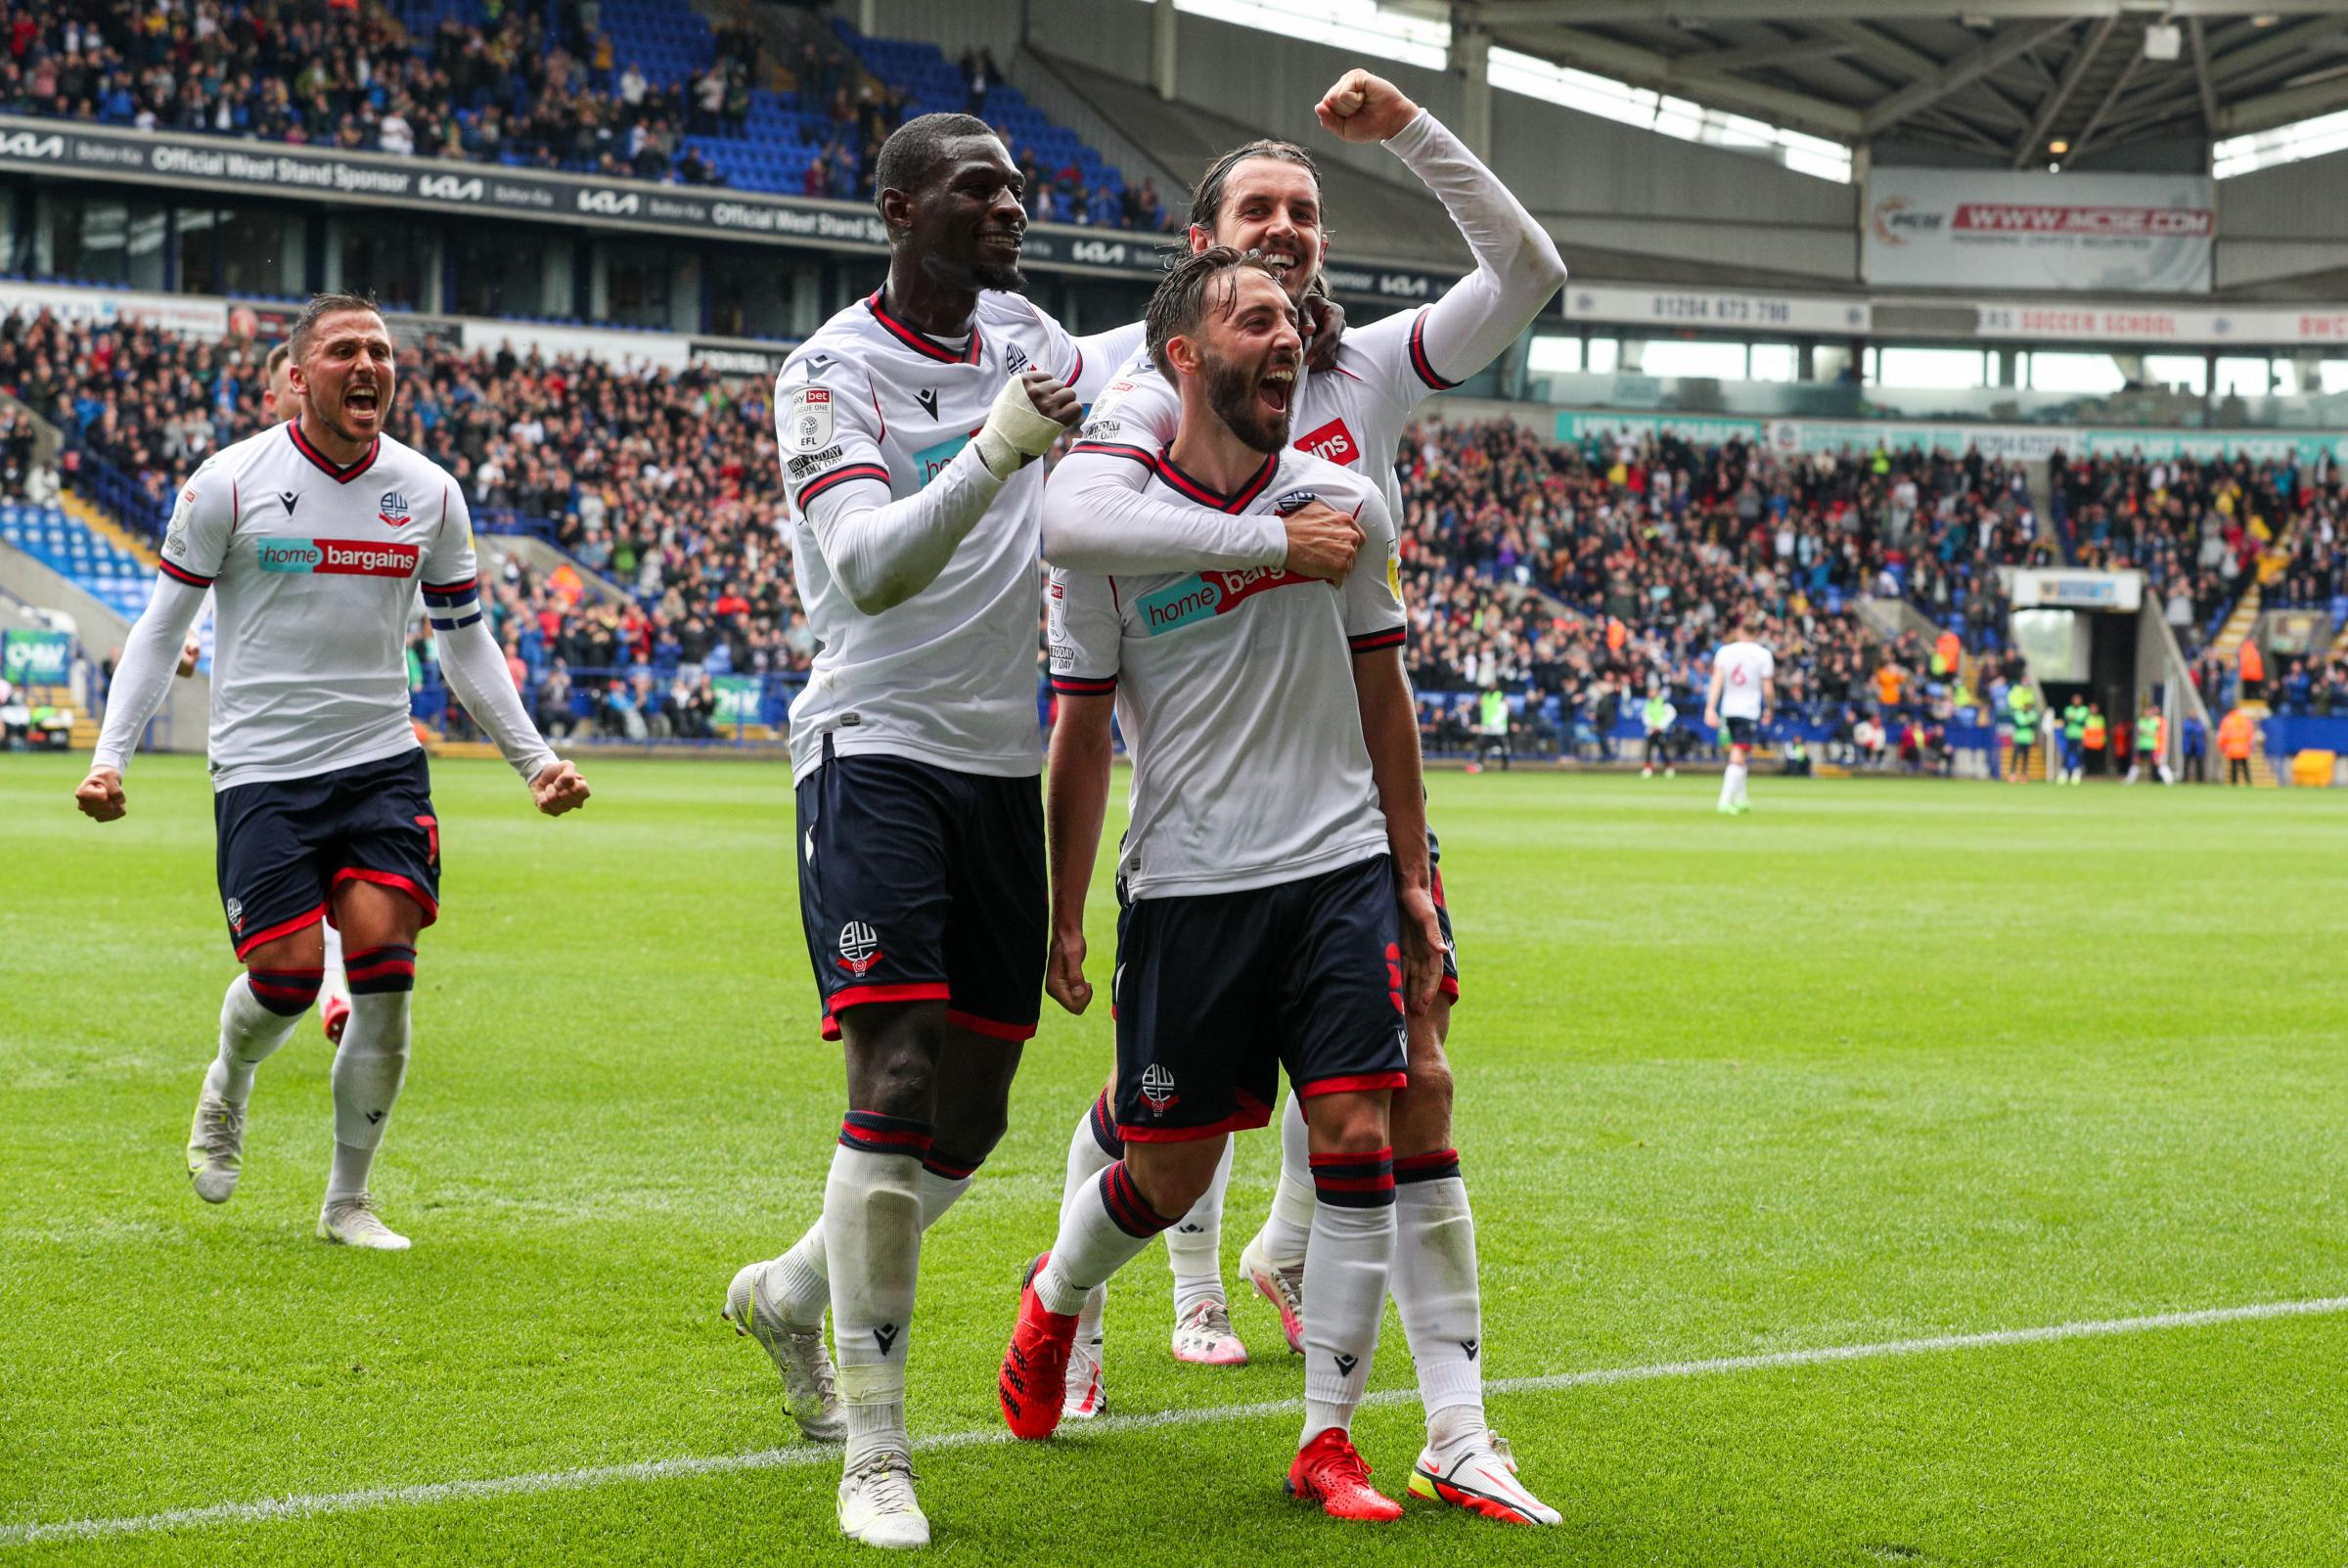 Bolton Wanderers' predicted line-up for Barnsley Carabao Cup clash